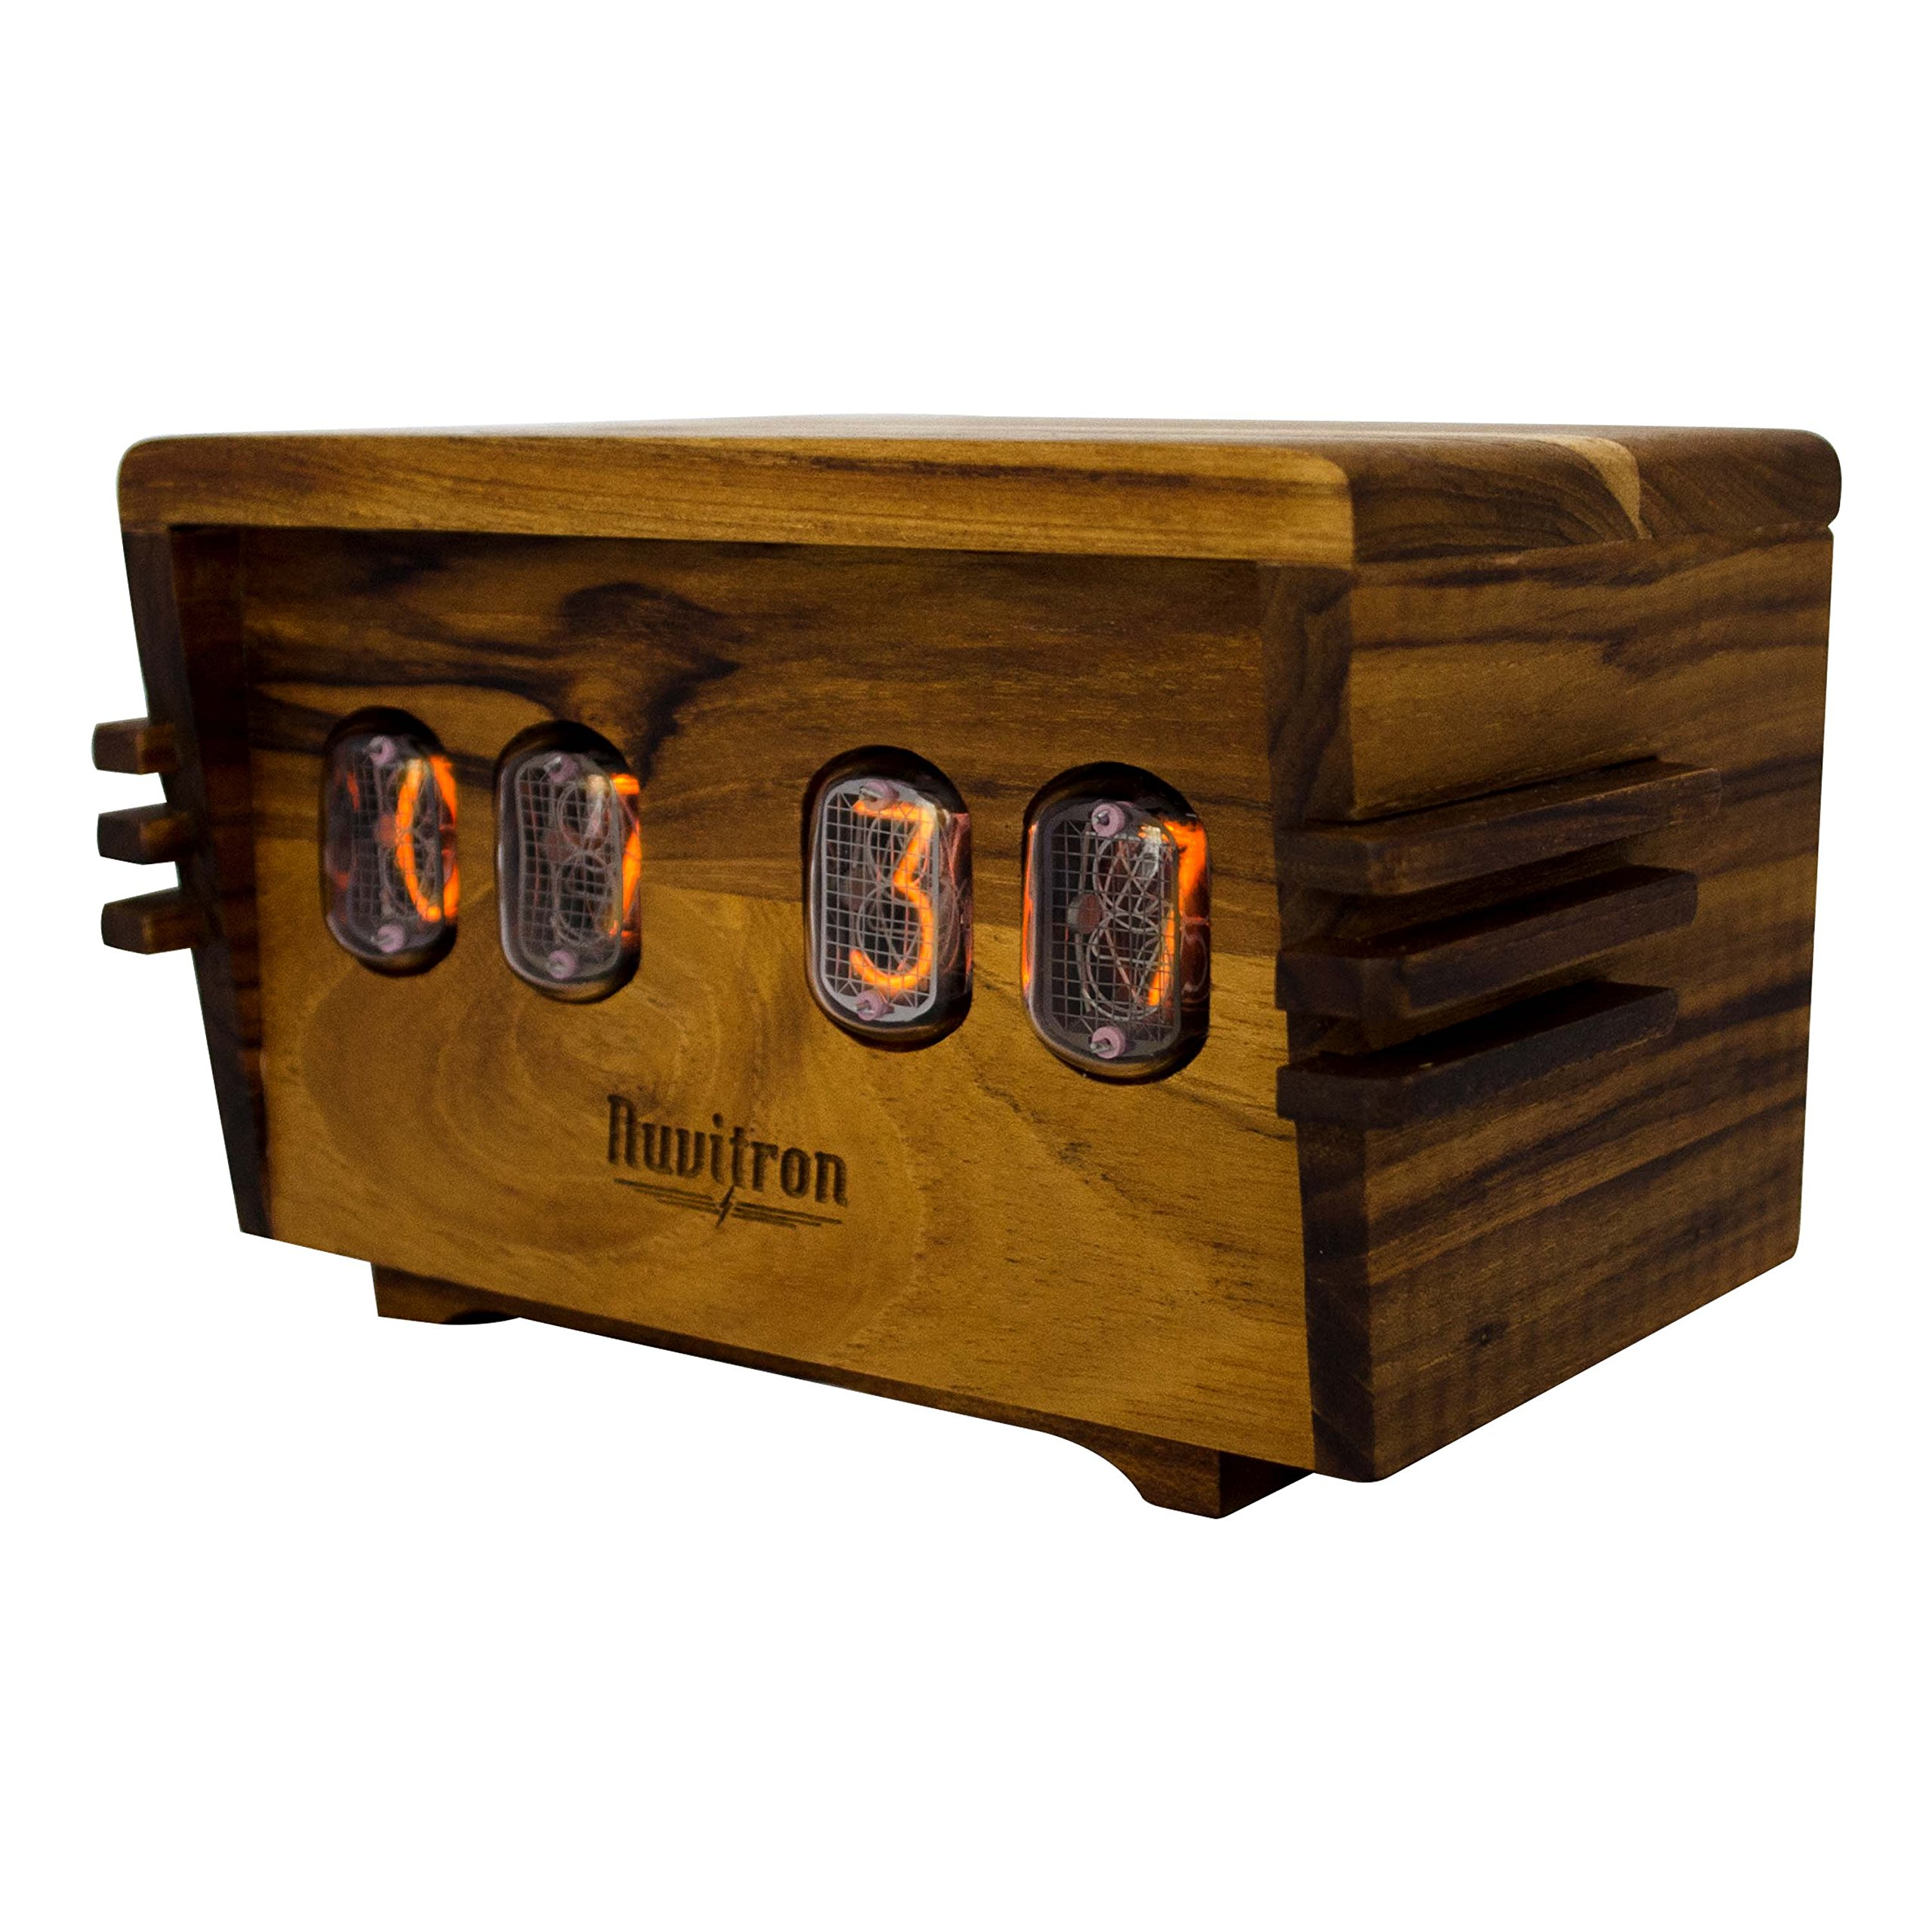 The Unique Nixie Vacuum Tube Alarm Clock | A Retro Wooden Desk Cool Clock | An Unusual Decorative Vintage Wood Clock Wedding or Anniversary Gift | Nixy Ampere by Nuvitron